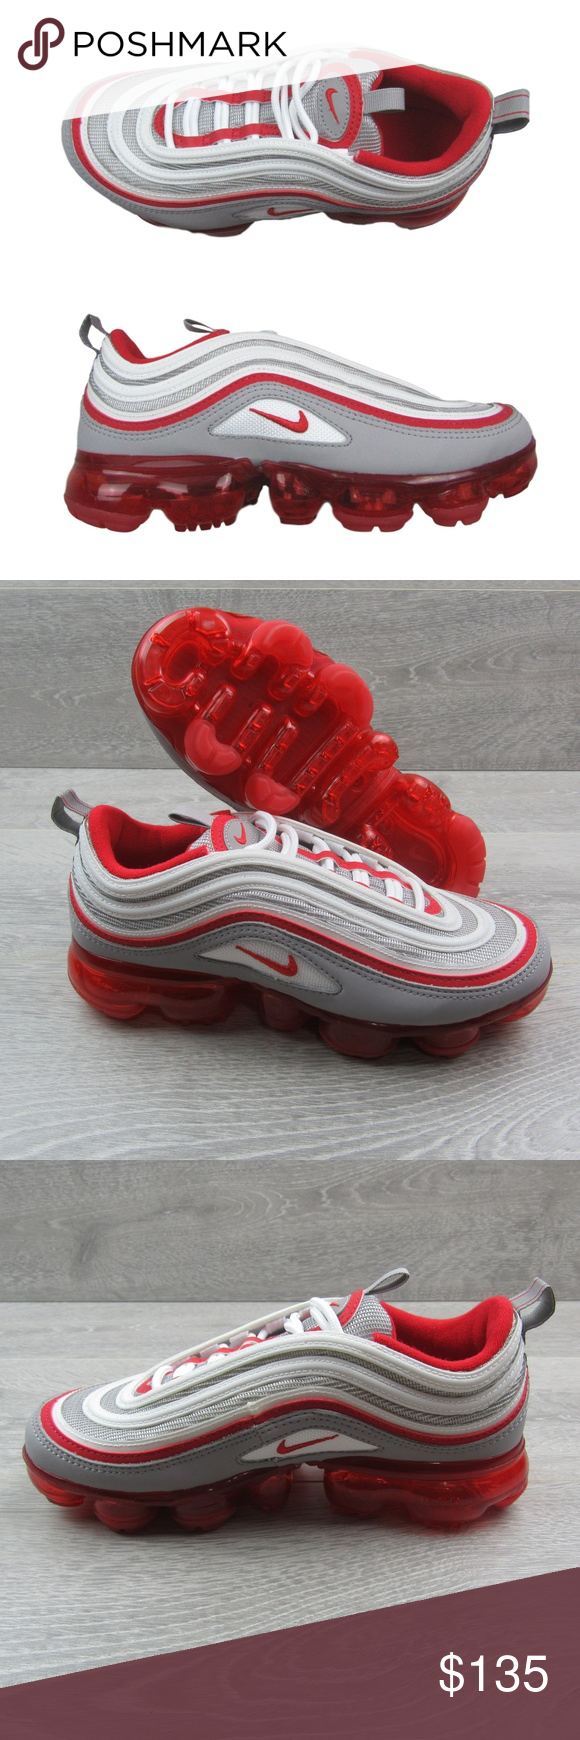 Nike Air Vapormax 97 Gs Size 4 5y Womens Size 6 Nike Air Vapormax 97 Gs Atmosphere Grey University Red Colorway Style Nike Air Vapormax Womens Sizes Nike Air